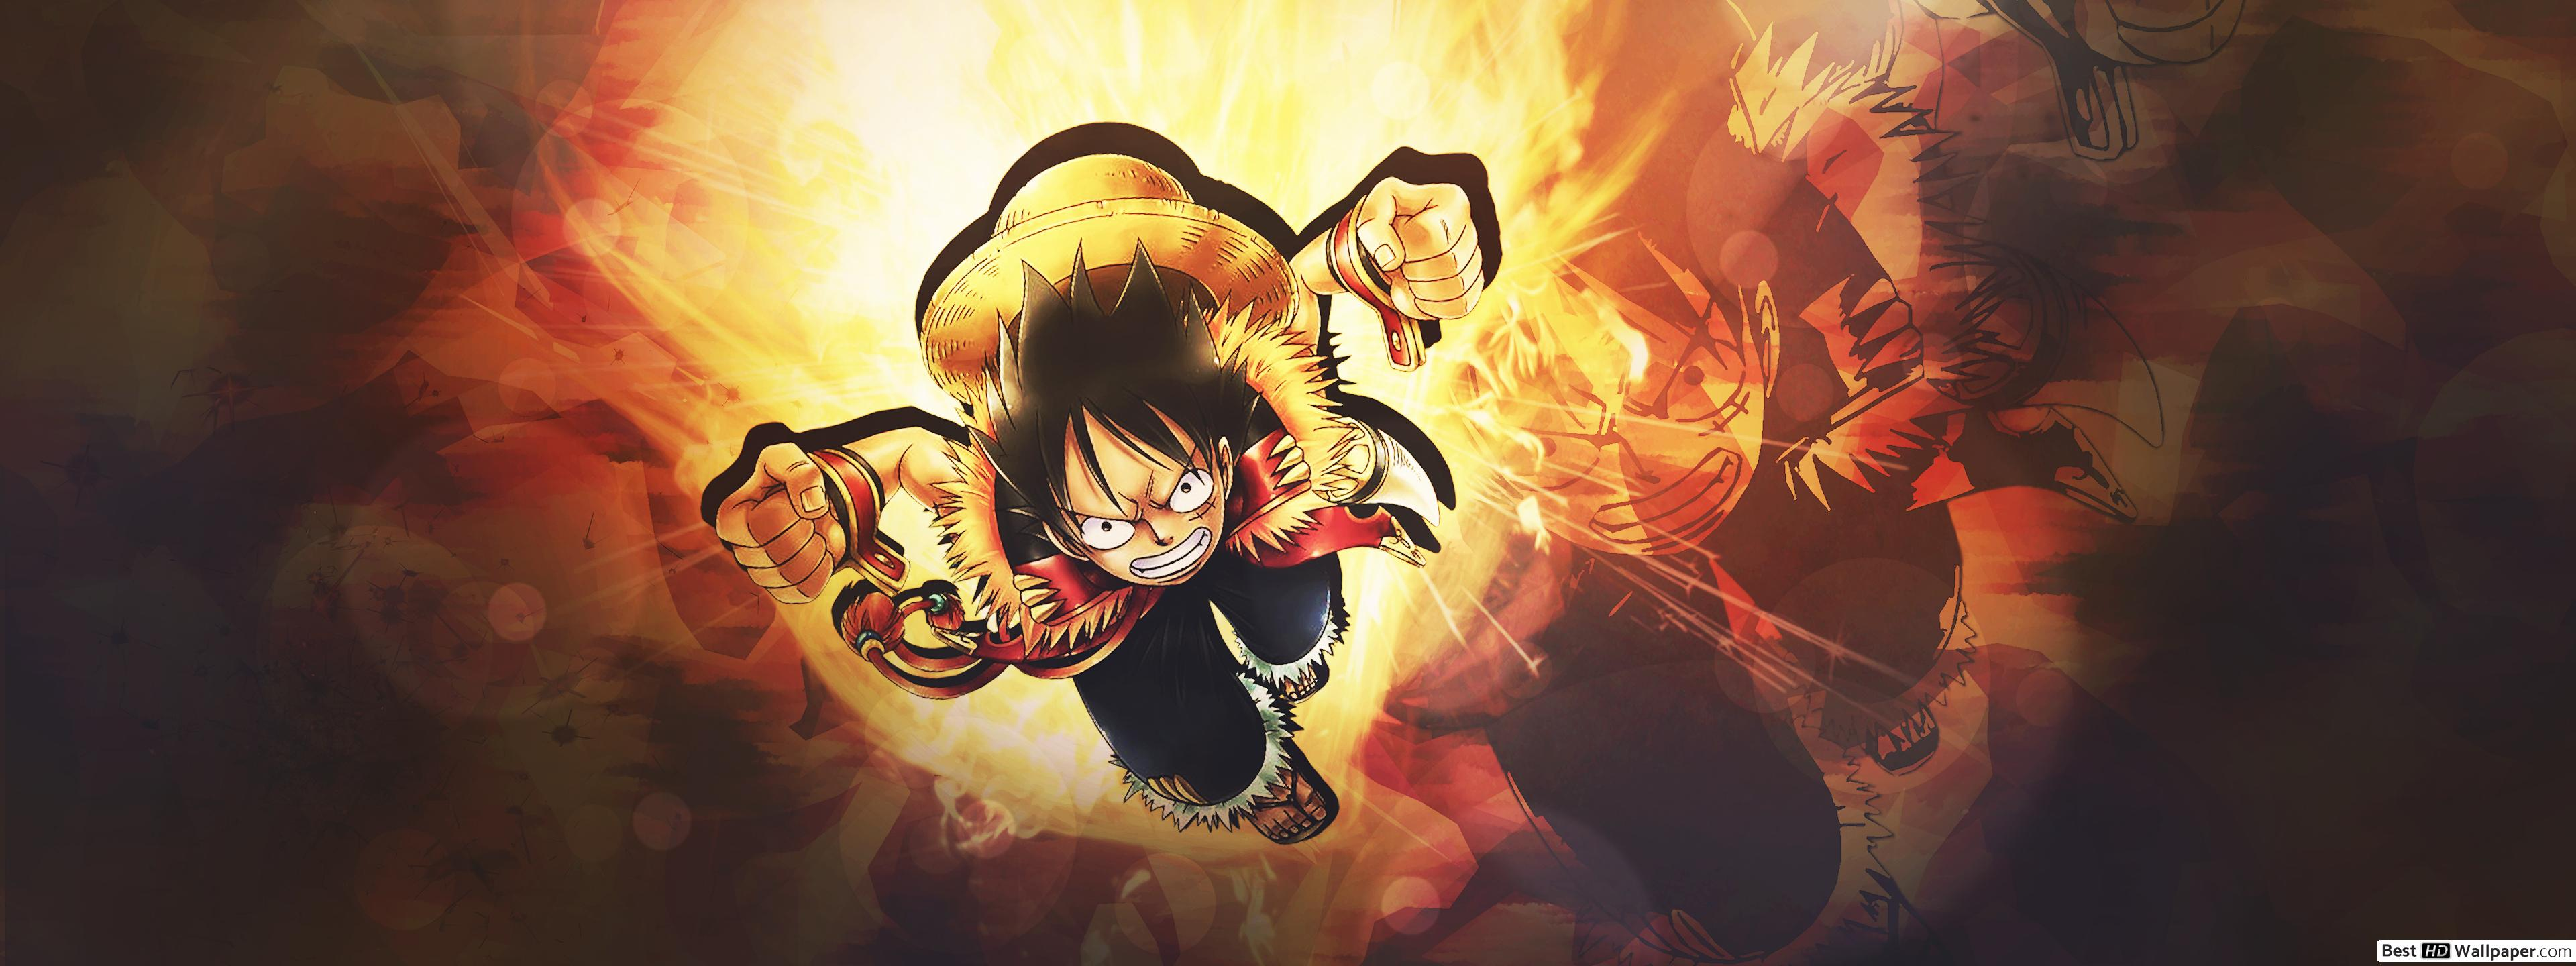 One Piece Wallpaper 1080p 3840x1440 Download Hd Wallpaper Wallpapertip